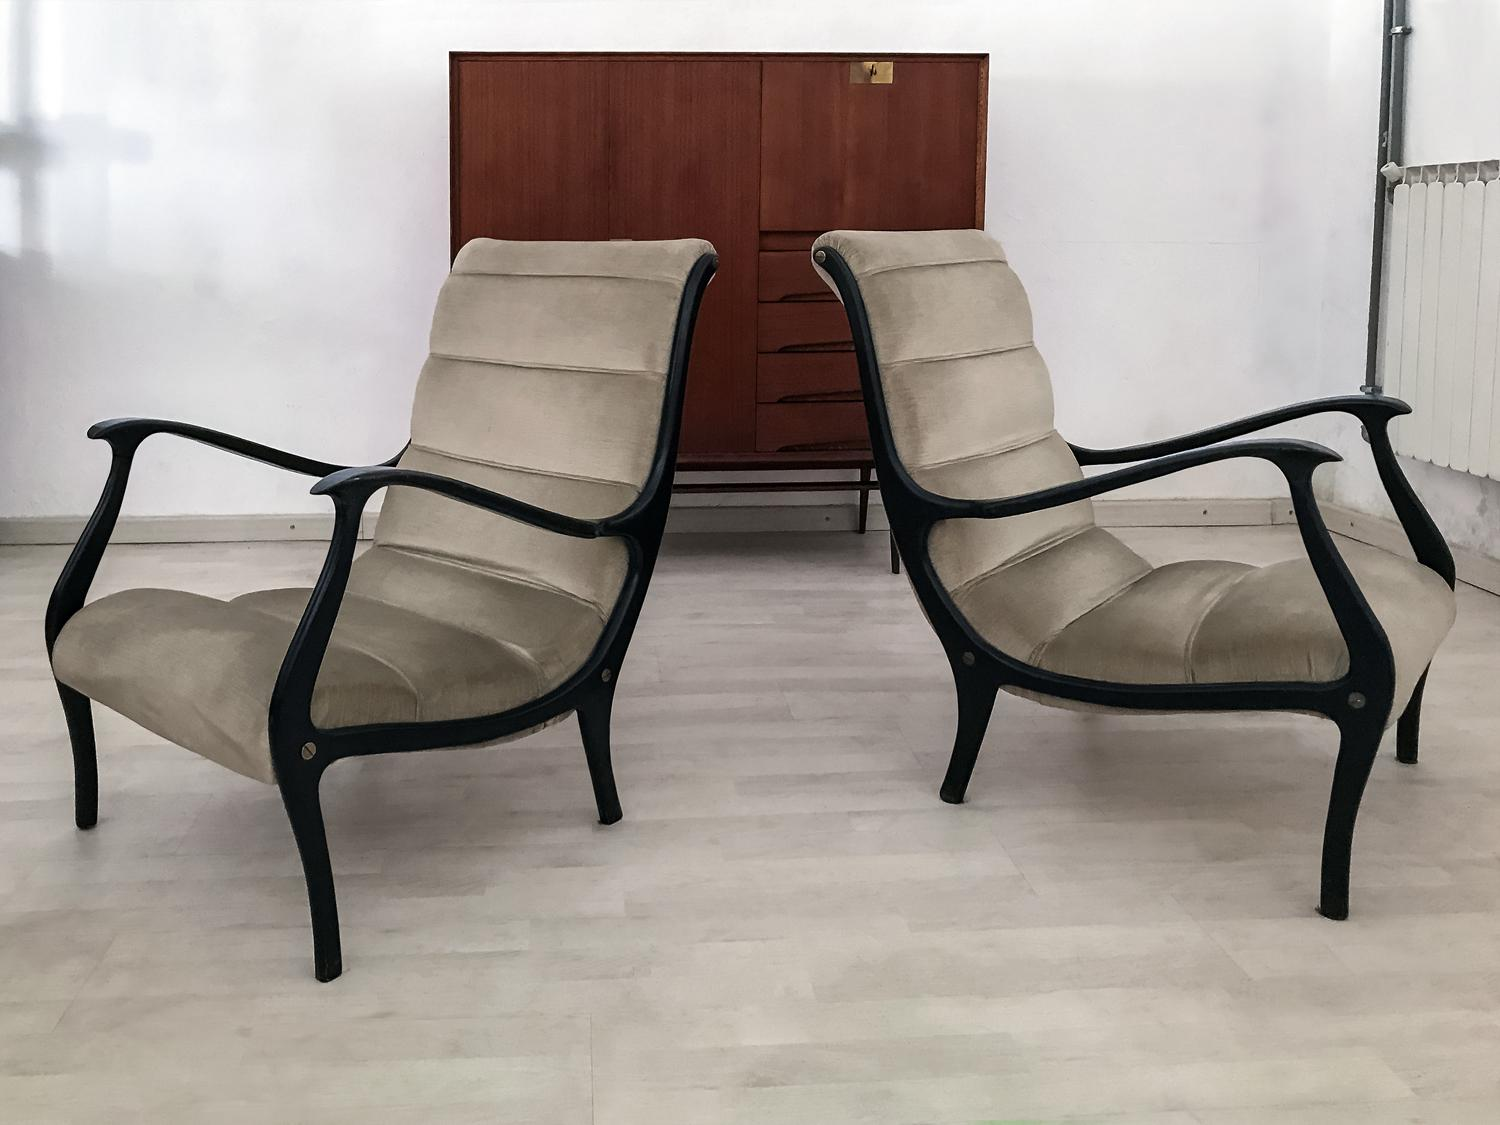 Mid Century Modern Italian Lounge Chairs In Velvet By Ezio Longhi For Elam,  1950s